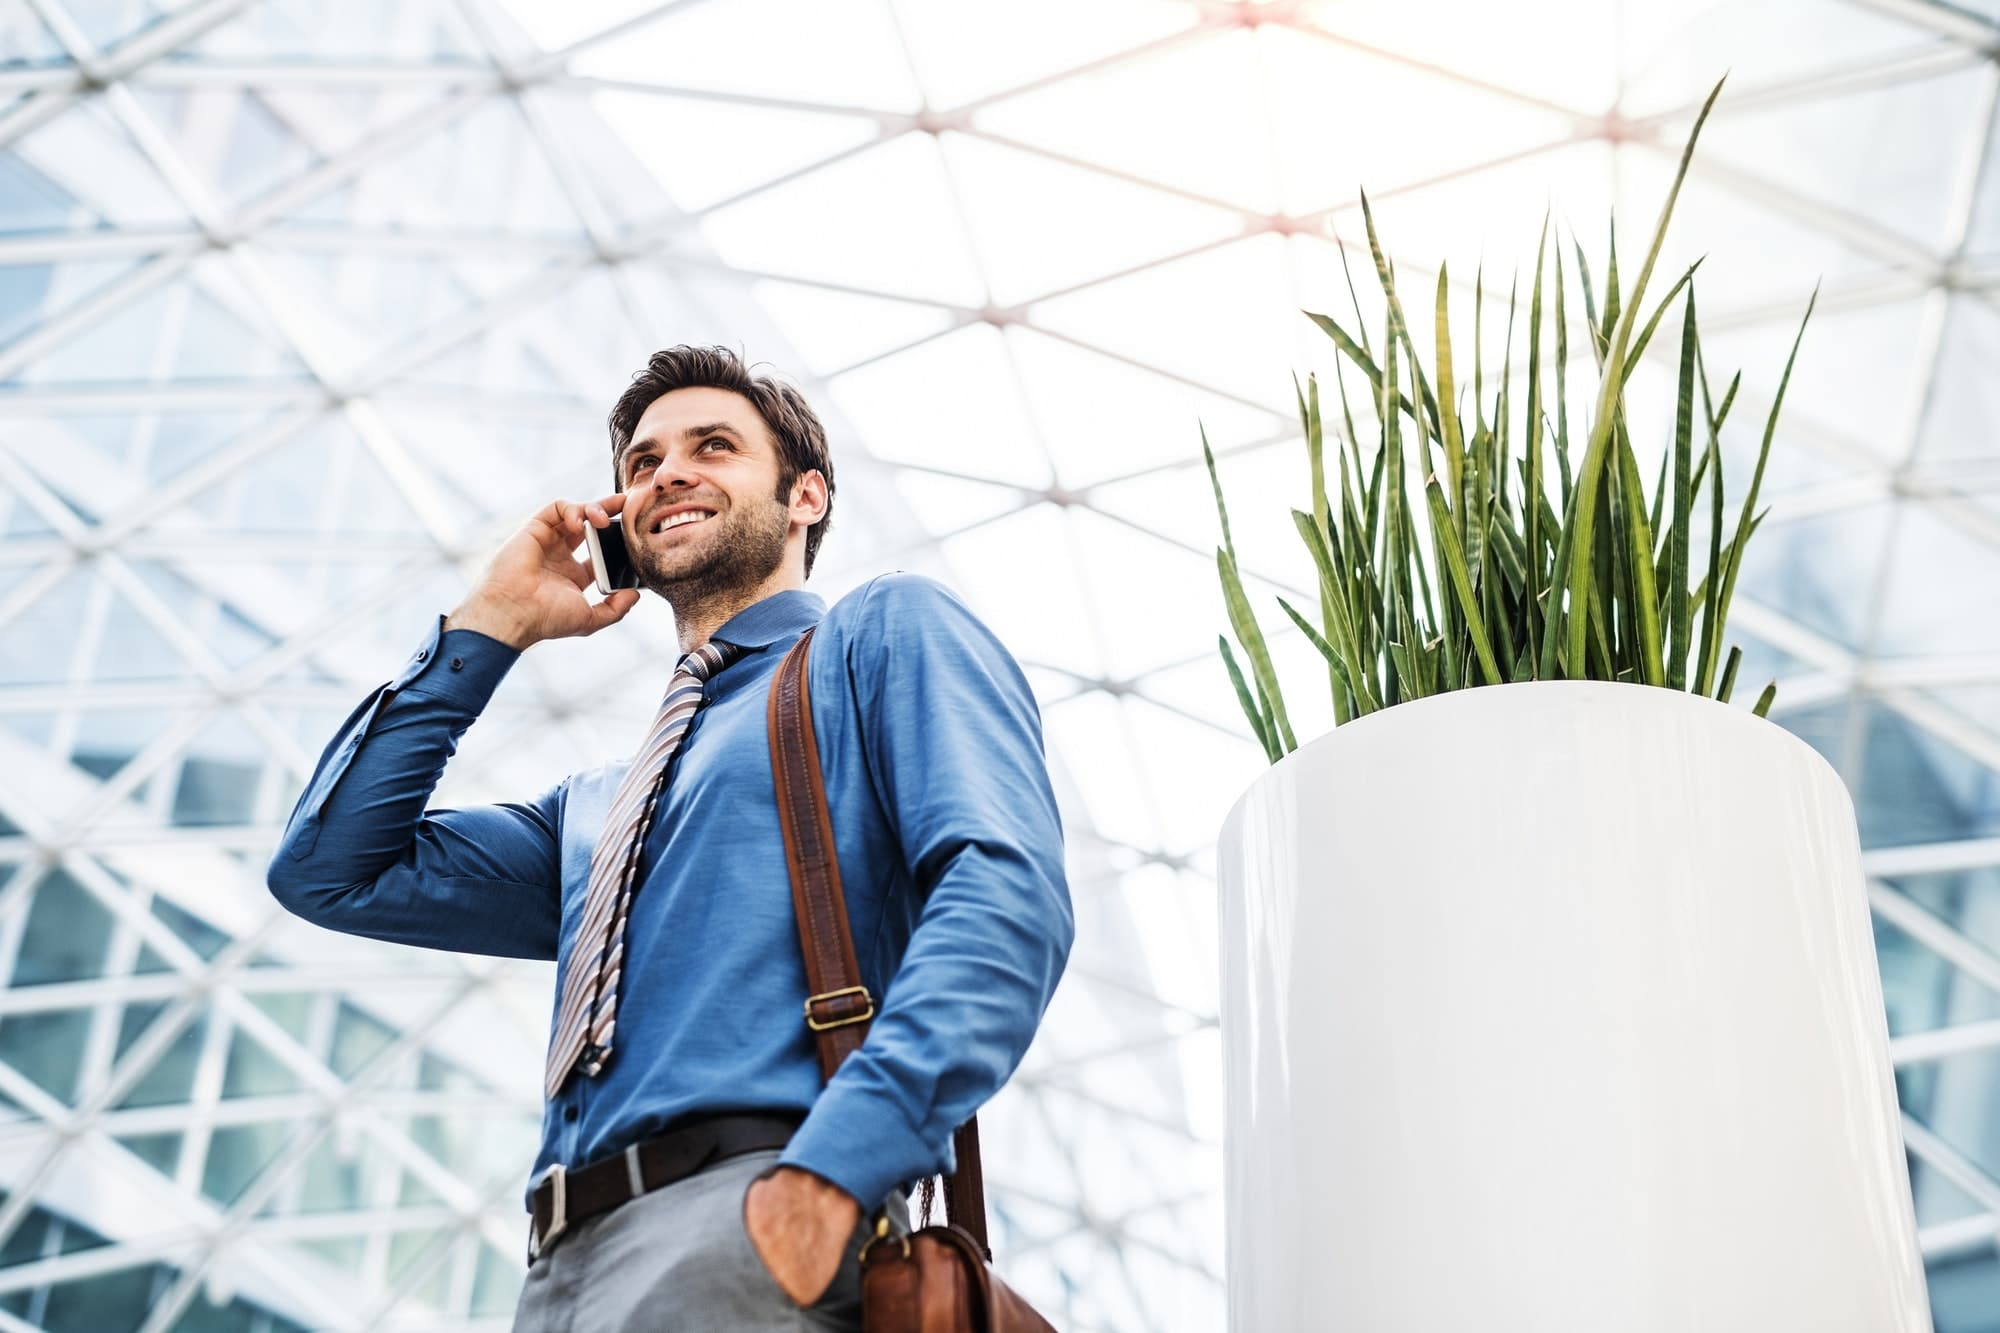 A young businessman with smartphone, making a phone call. Copy space.